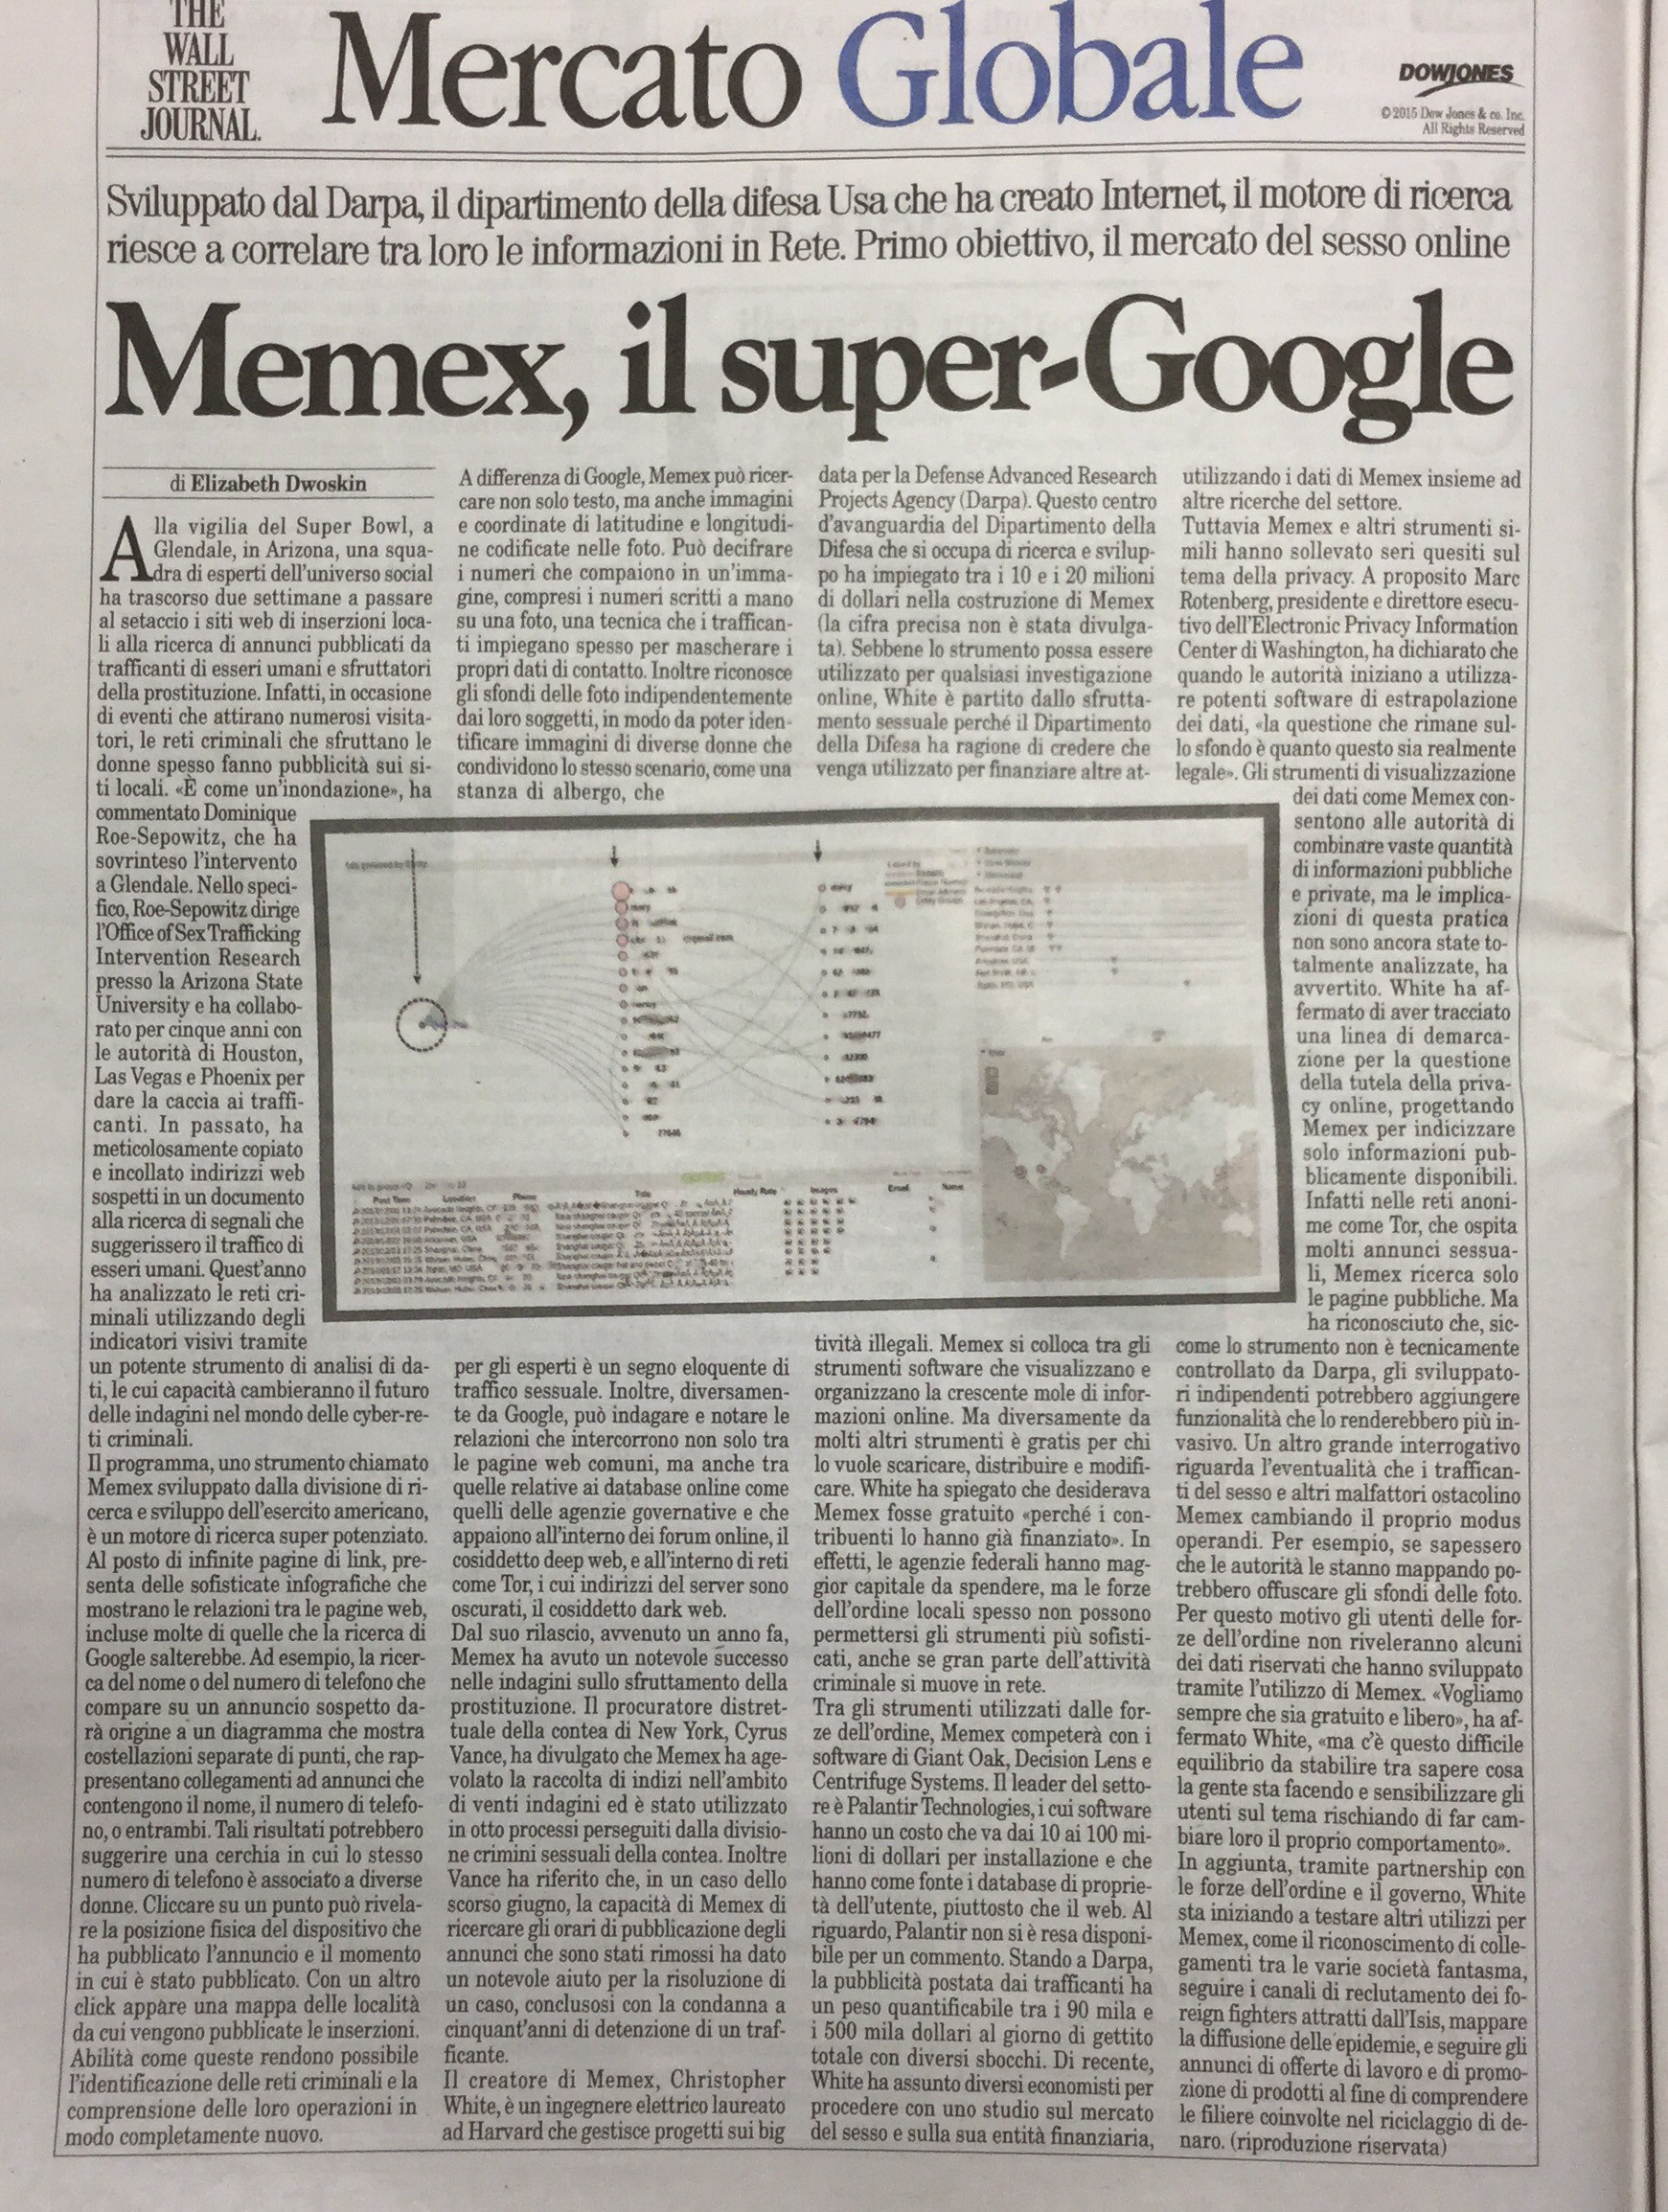 MEMEX Il SUPER - GOOGLE